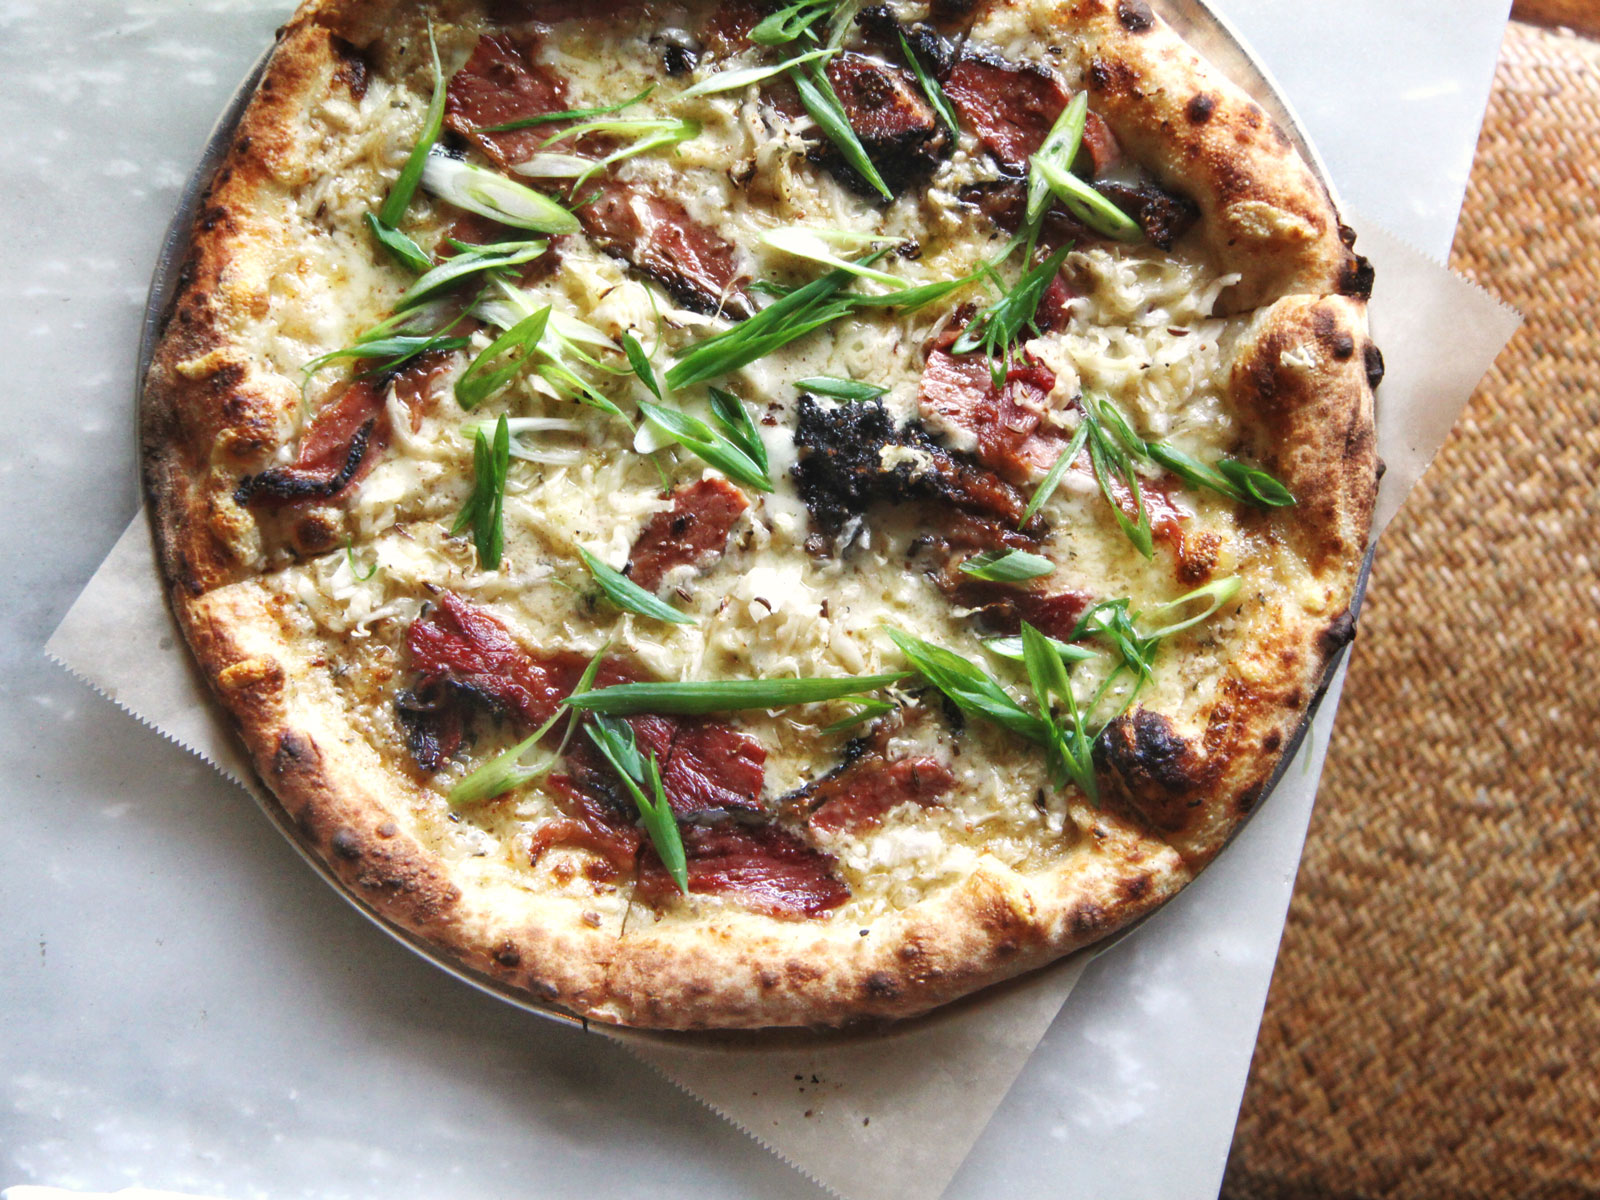 Let's All Move to Miami Because Pastrami-Topped Rye Pizza Exists There